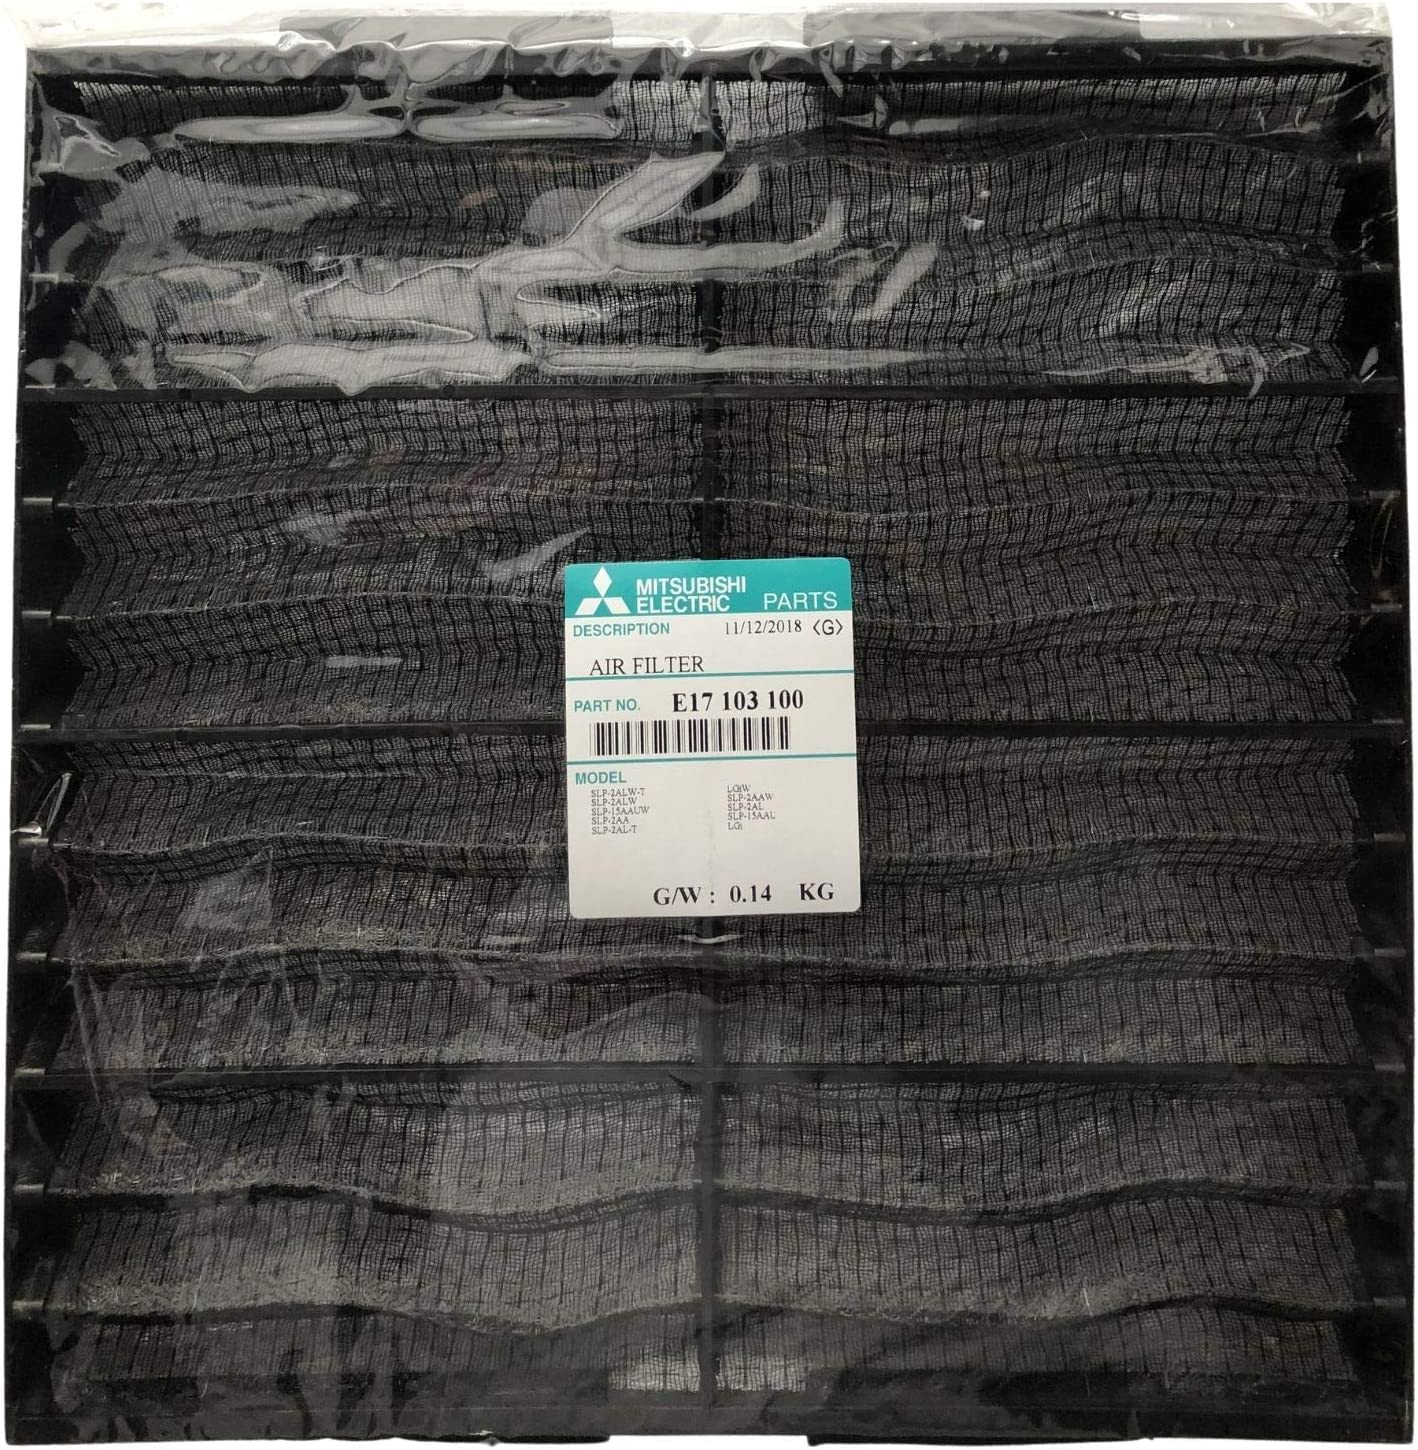 Mitsubishi Electric E17 103 100 Ceiling Cassette Air Filter Home ...